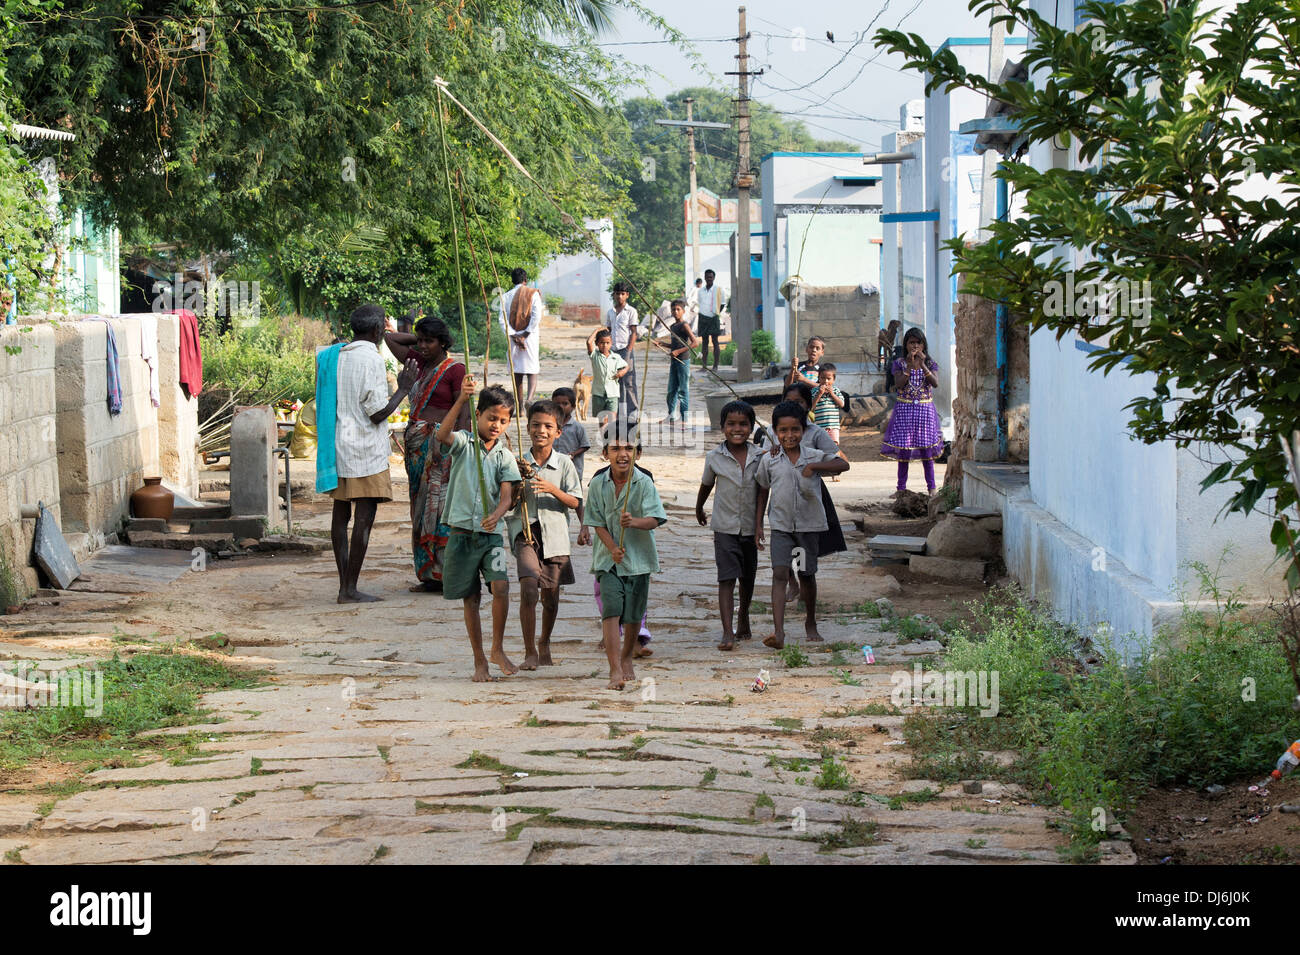 Rural indian school children playing in a village street. Andhra Pradesh, India - Stock Image